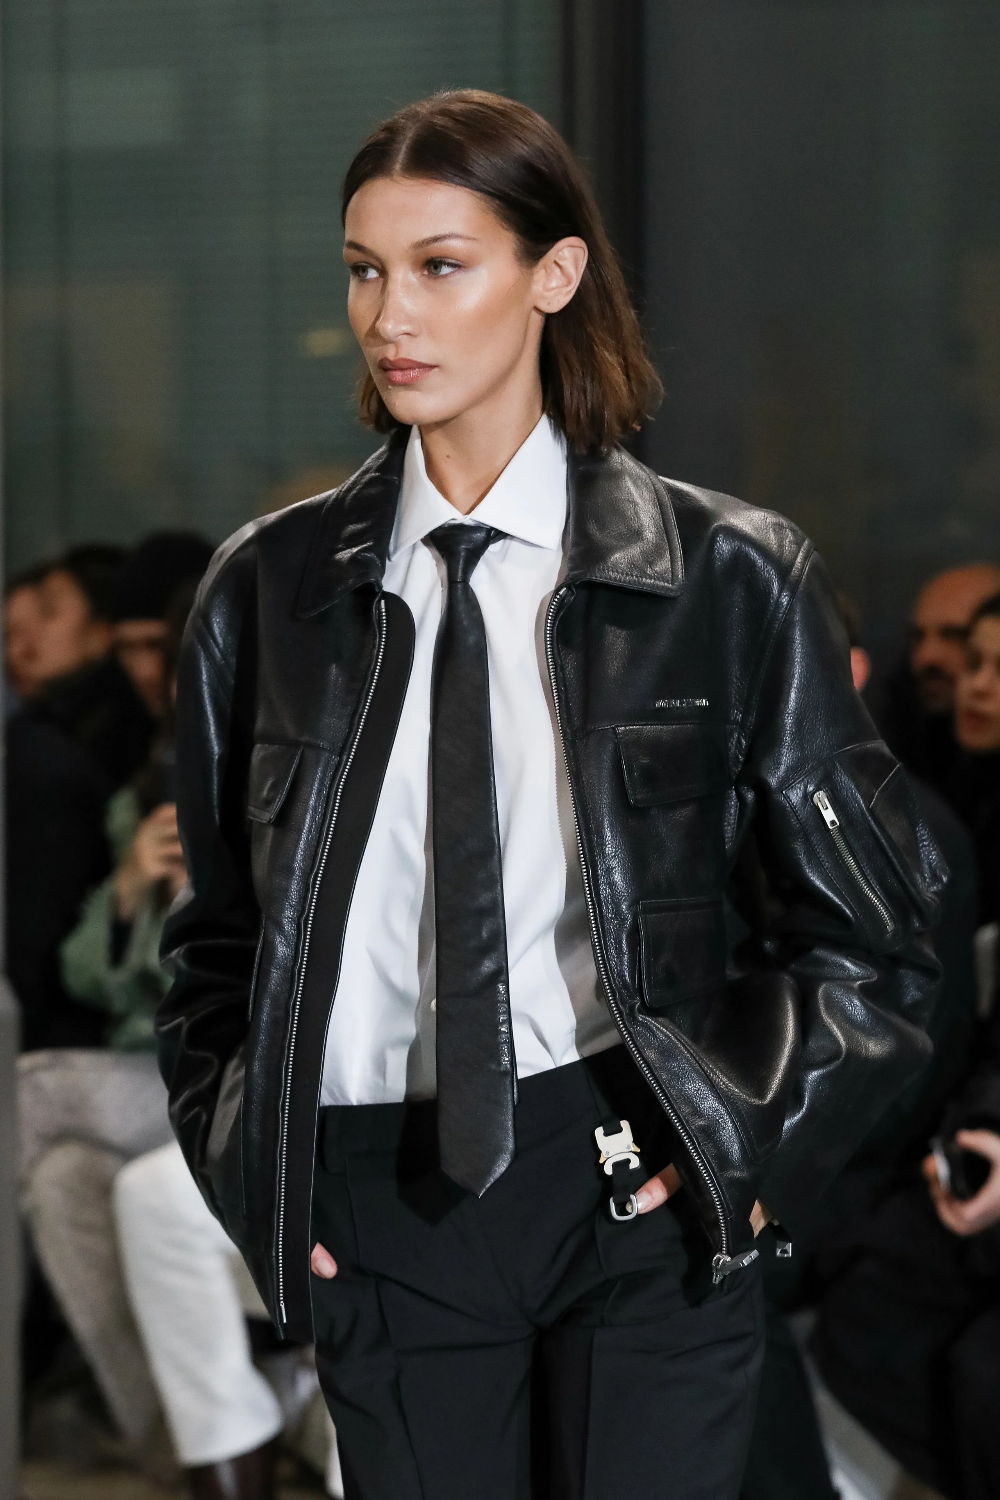 Bella Hadid Is Wearing A Tie And So Should You Bella Hadid Outfits Fashion Bella Hadid Style [ 1500 x 1000 Pixel ]